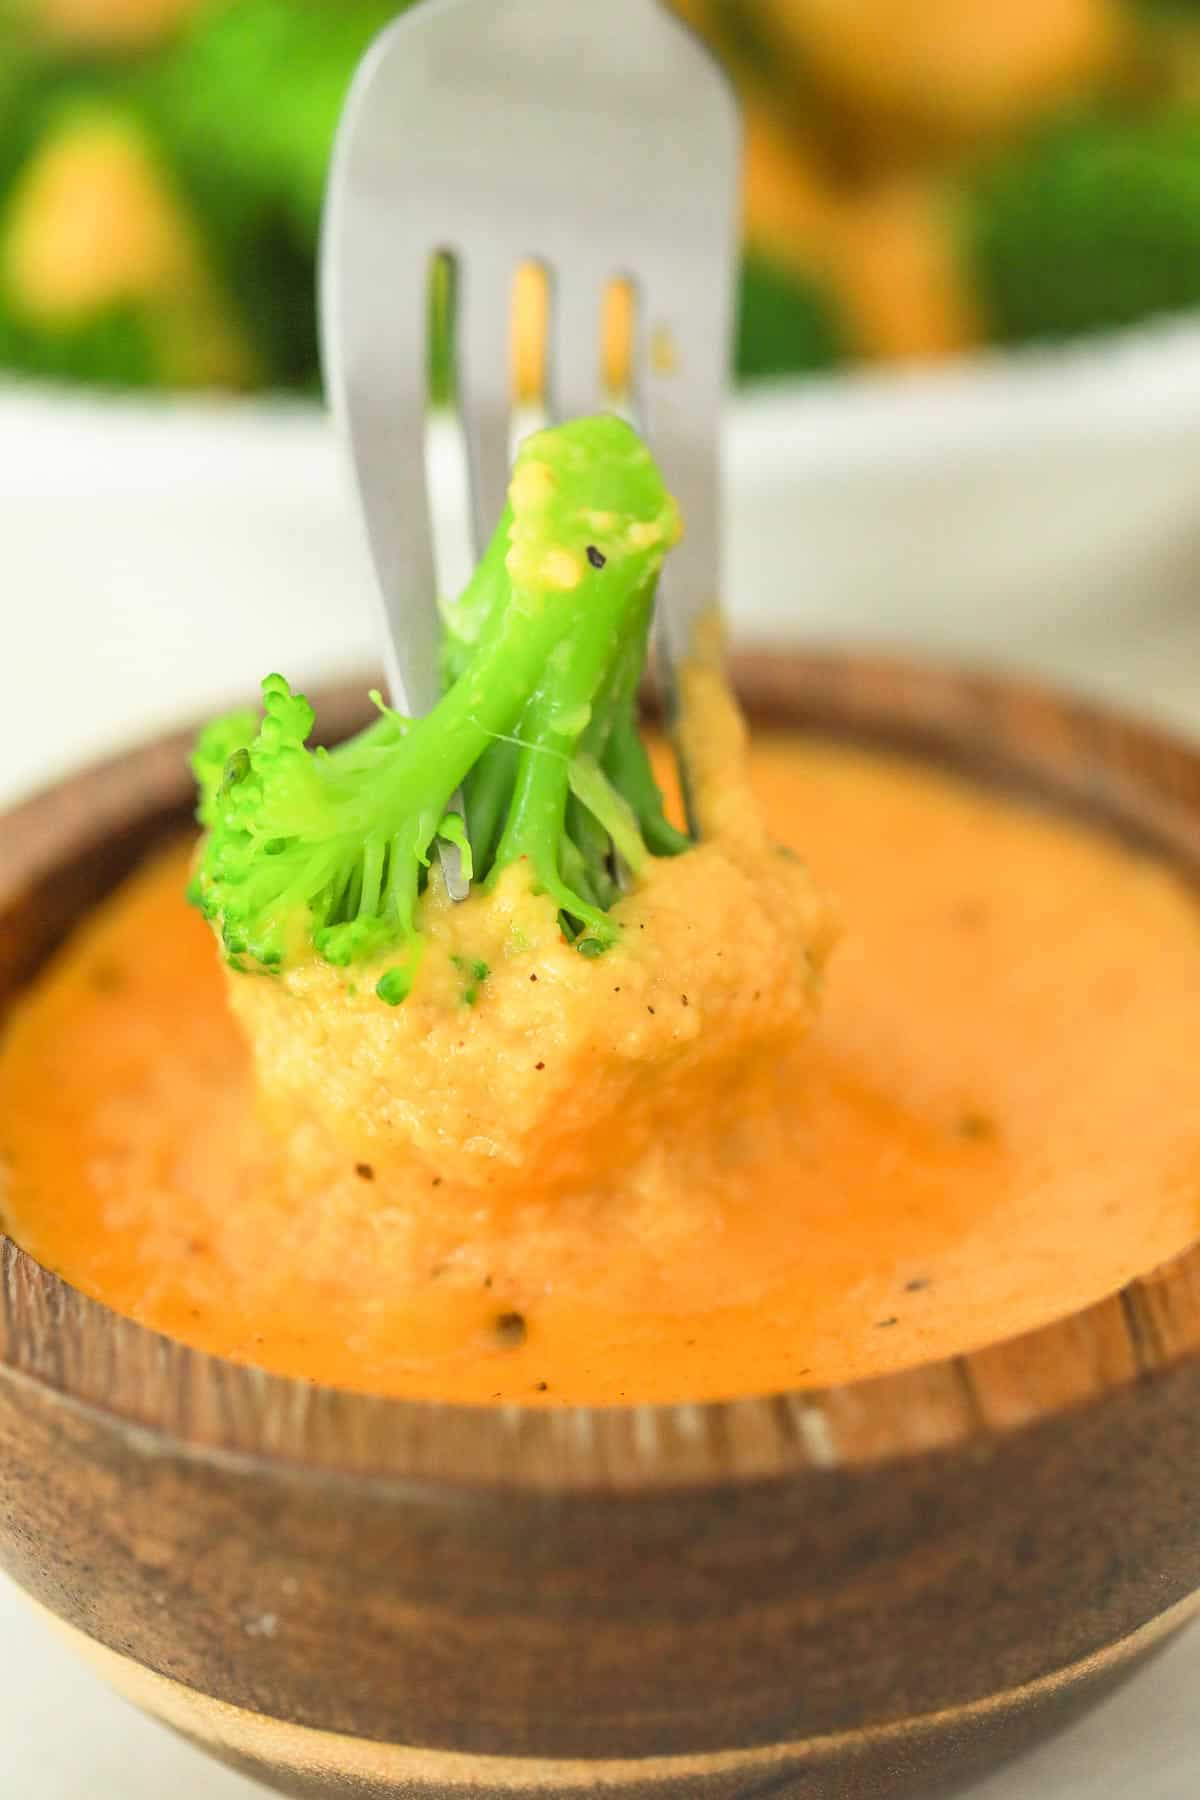 a fork dipping broccoli into a bowl of cheese sauce